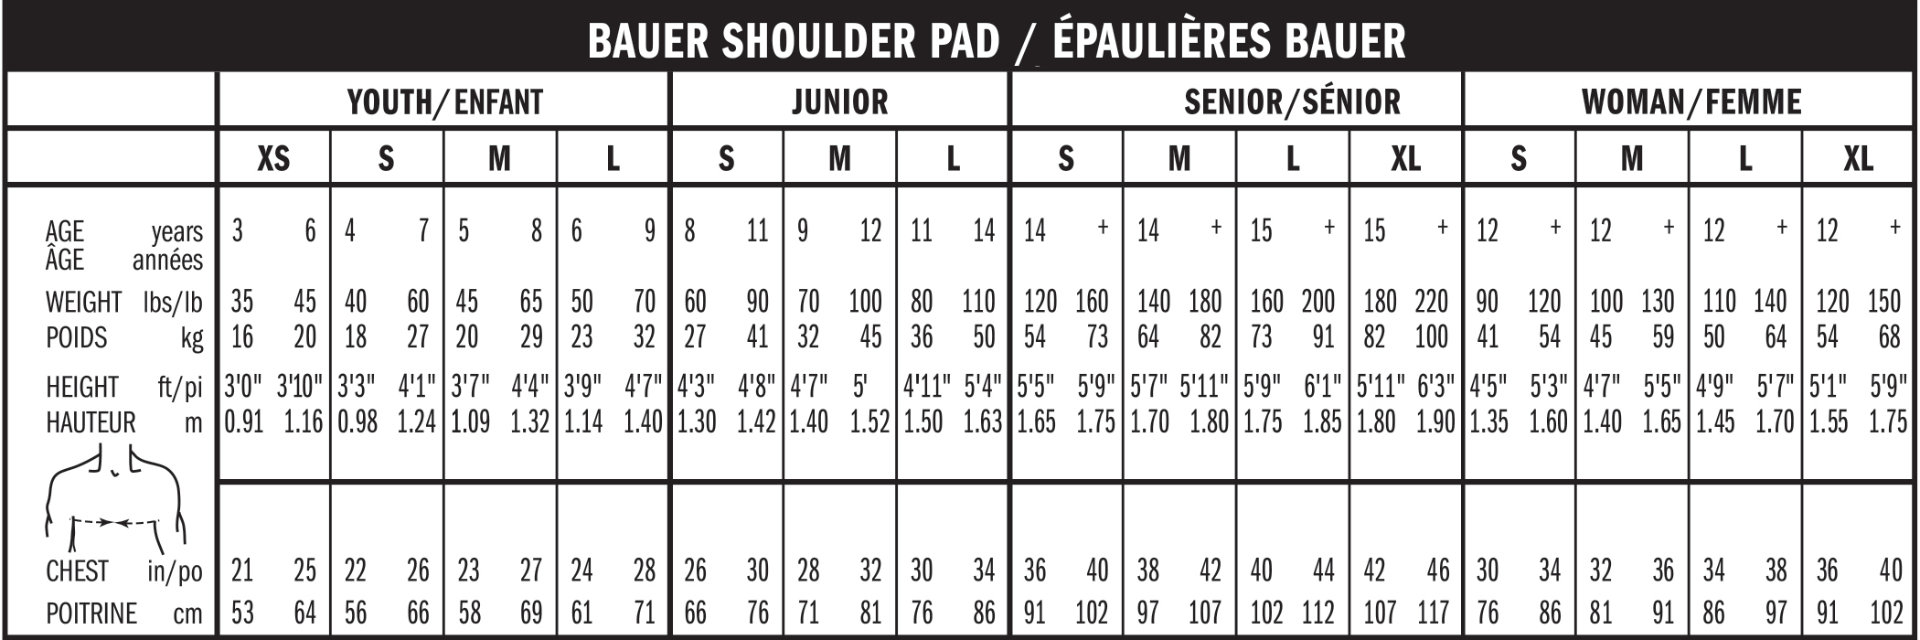 Bauer Shoulderpad maattabel